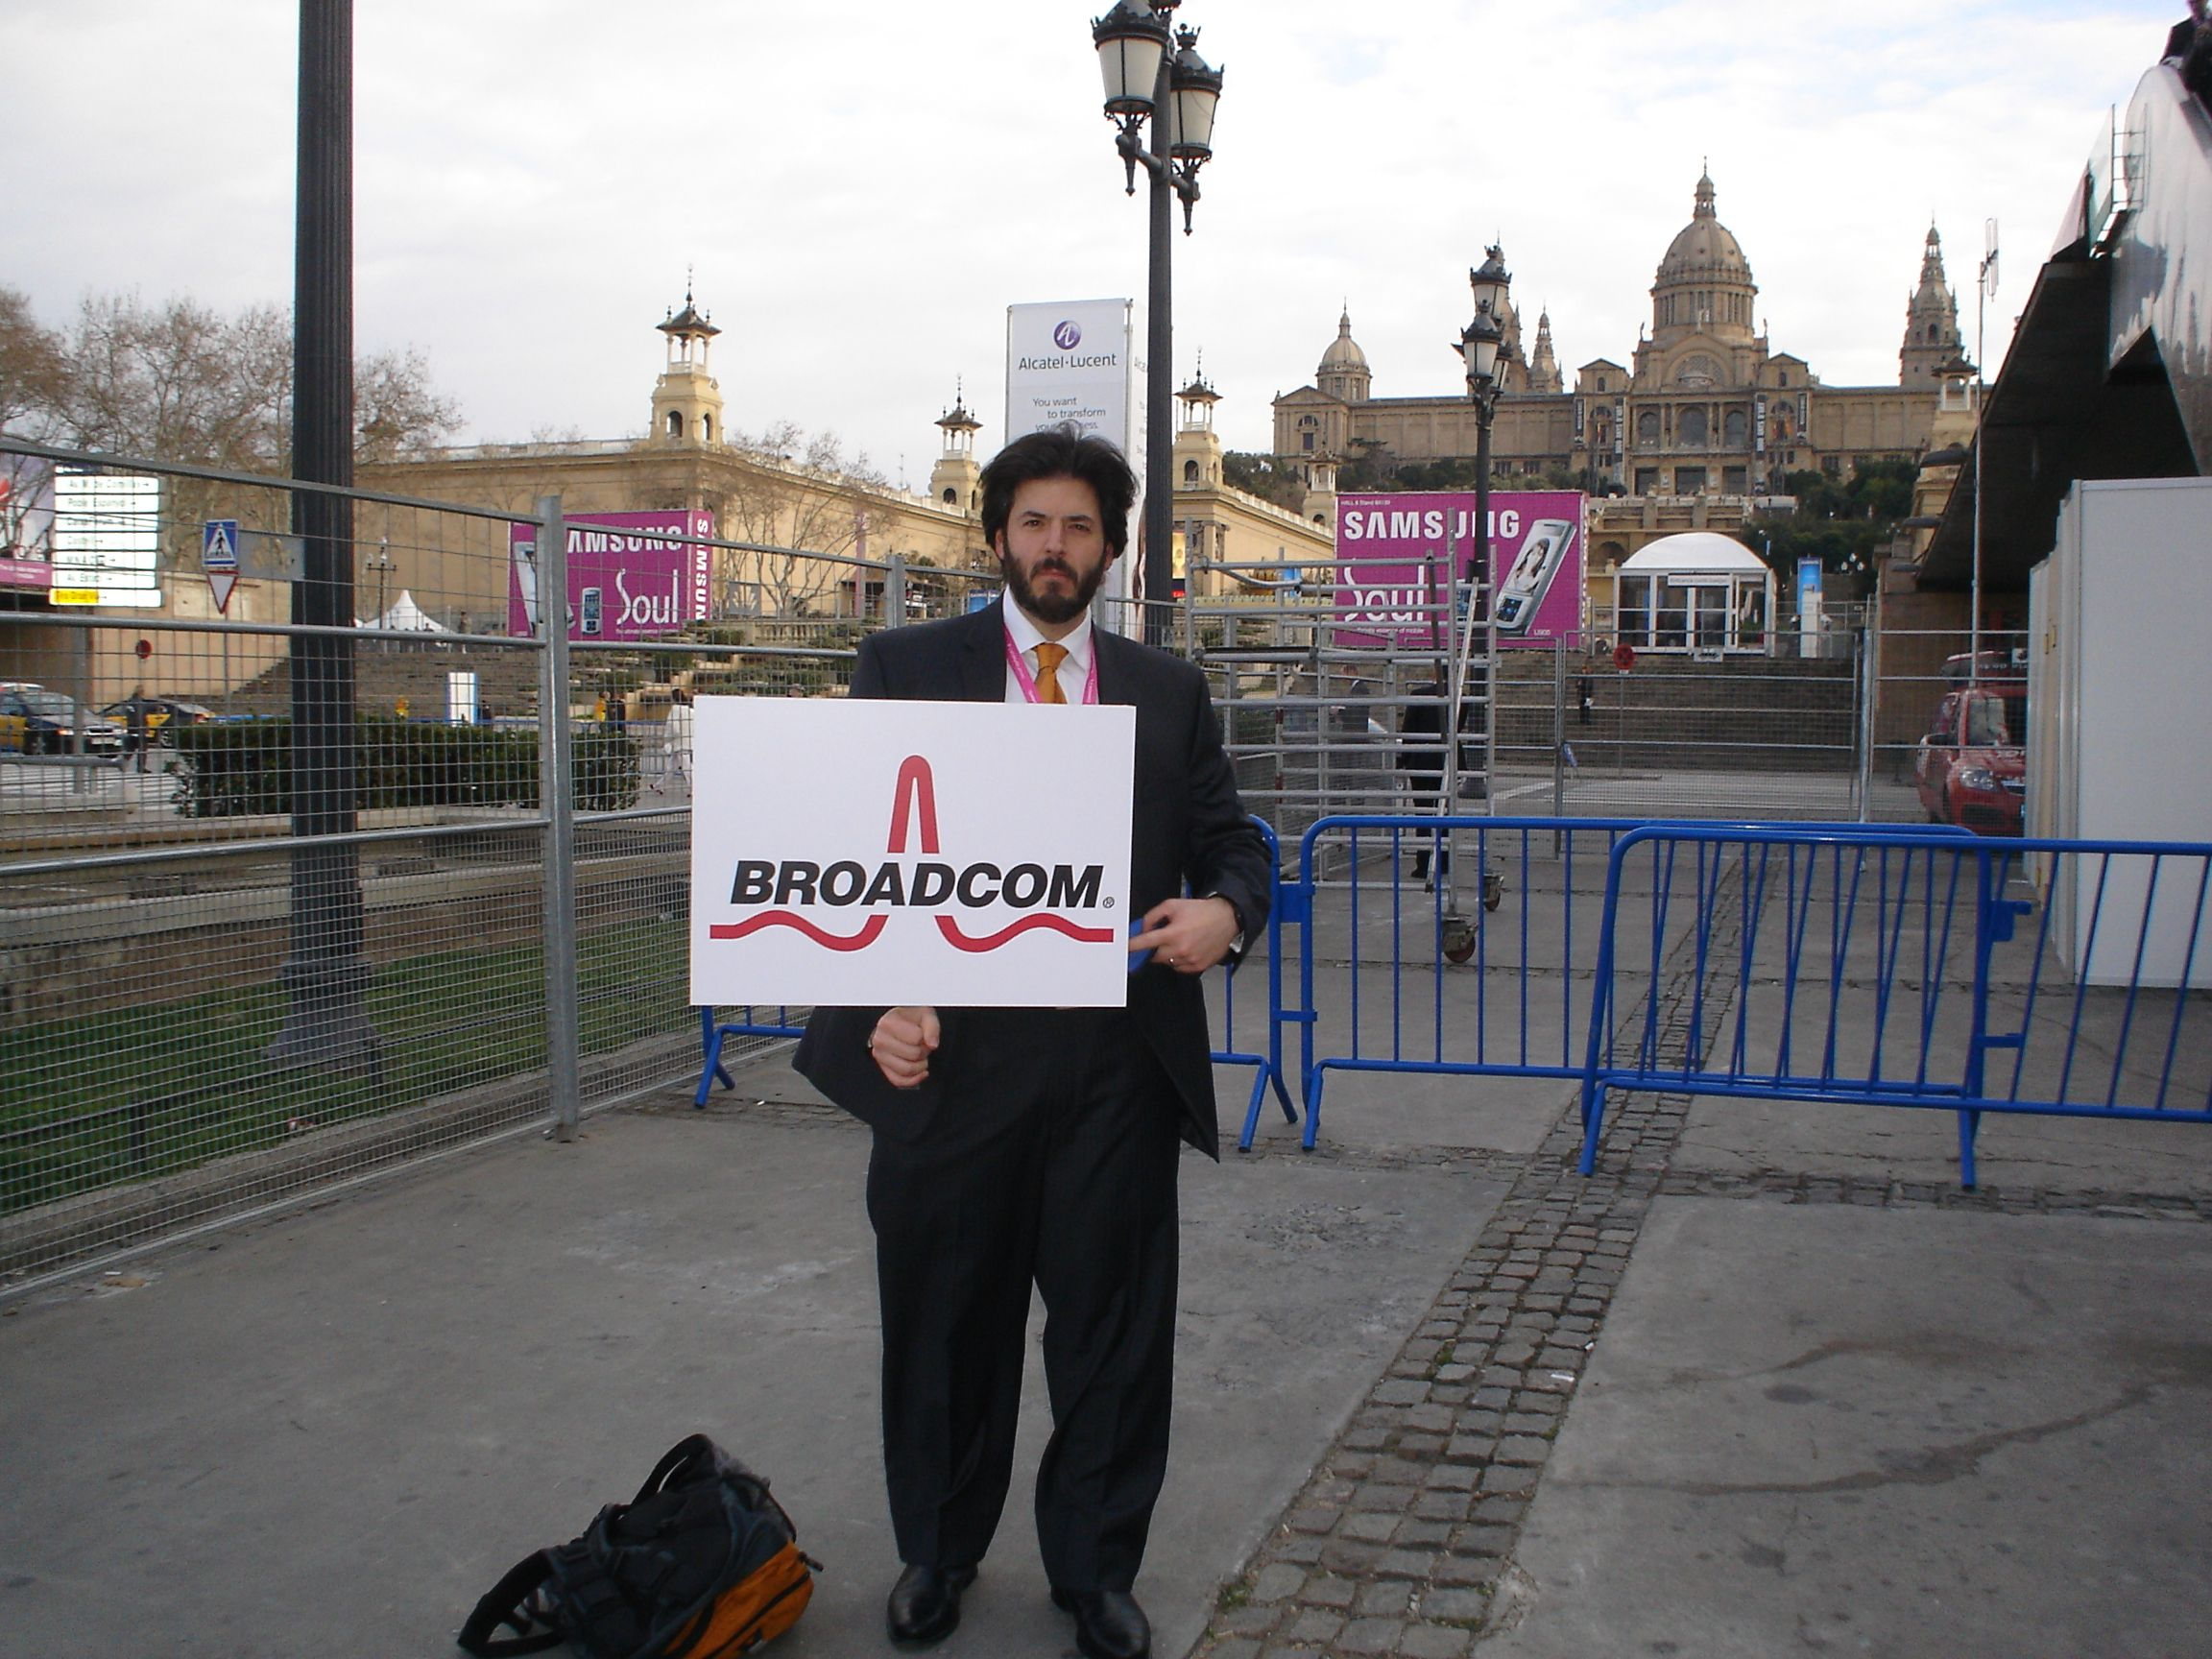 I called this look 'the start-up' due in large part to my lack of time or inclination for grooming at the time - for Broadcom at MWC 2008 in Barca